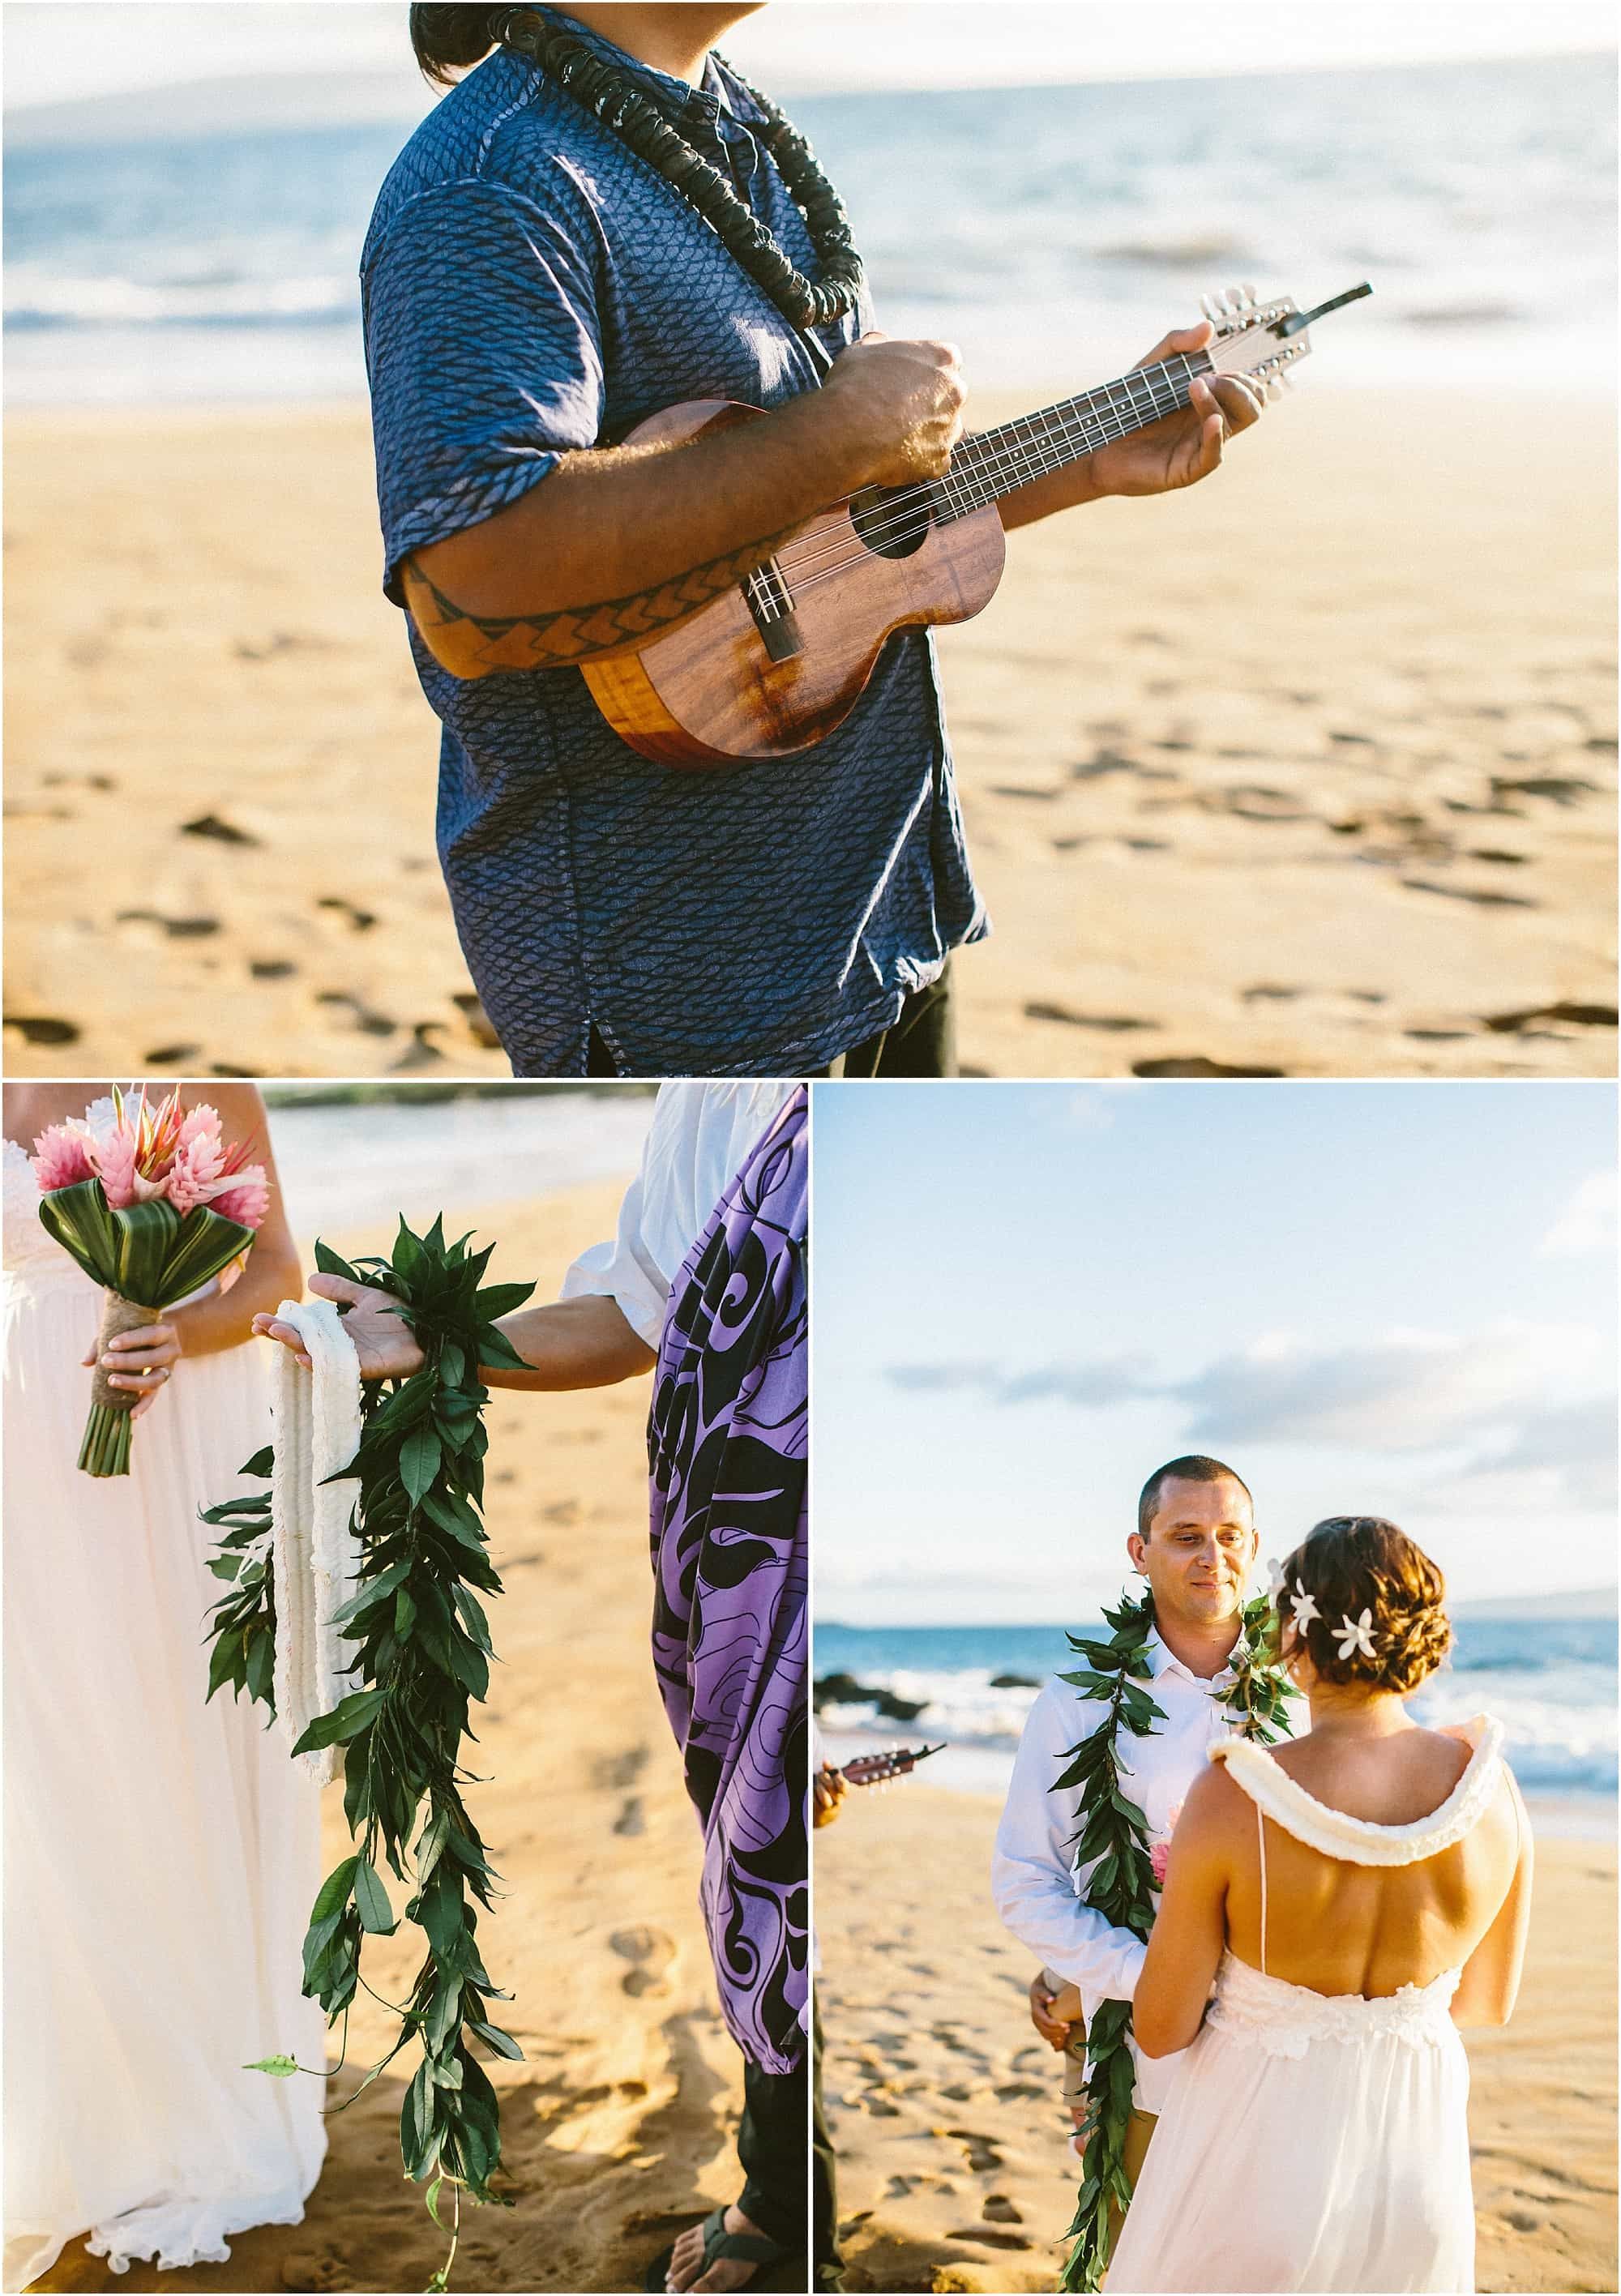 Intimate Maui Wedding by Amy J Short Photography and Maile Maui Weddings at Paipu Beach